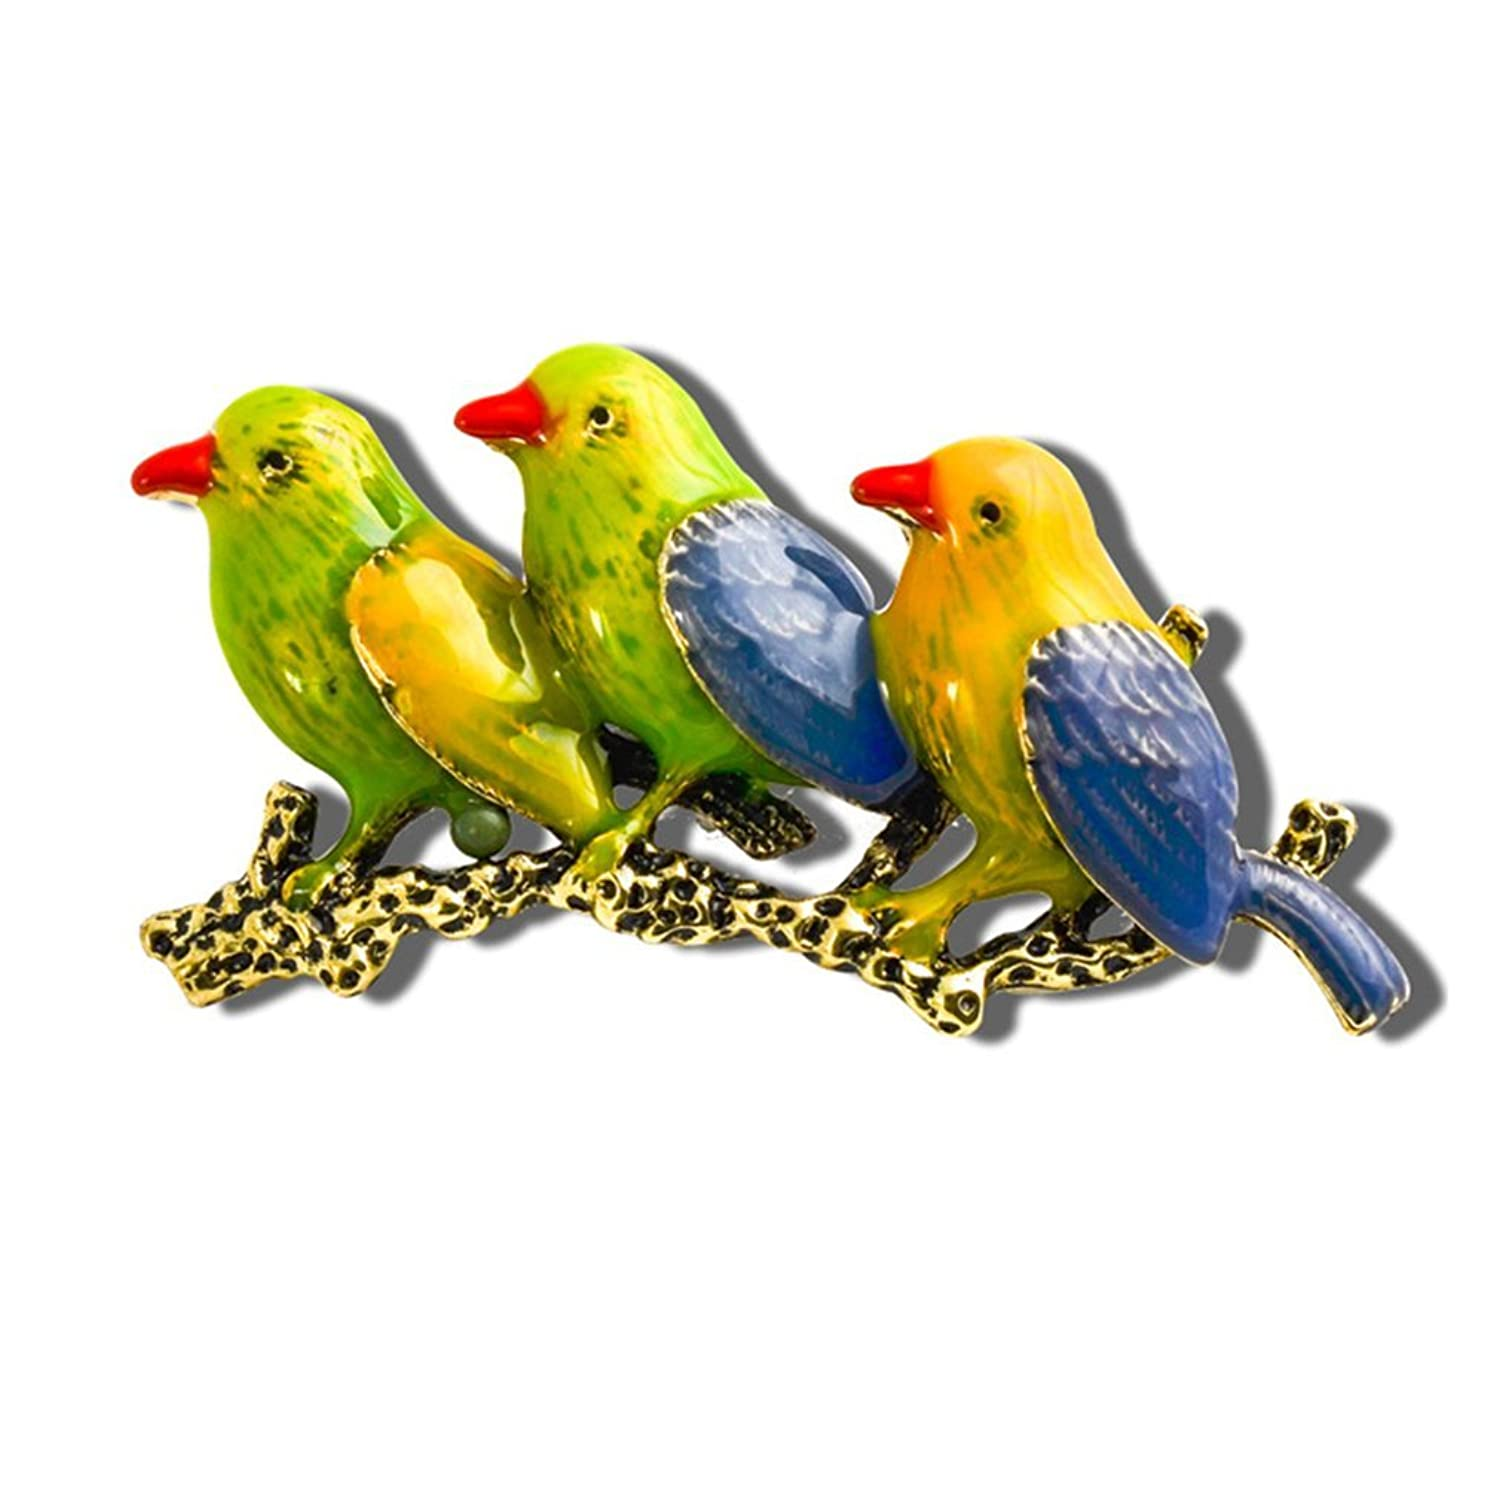 Sewanz Women's Elegant Colorful Three Brids Brooch Pins,Metal Jewelry Corsage Costume Accessory